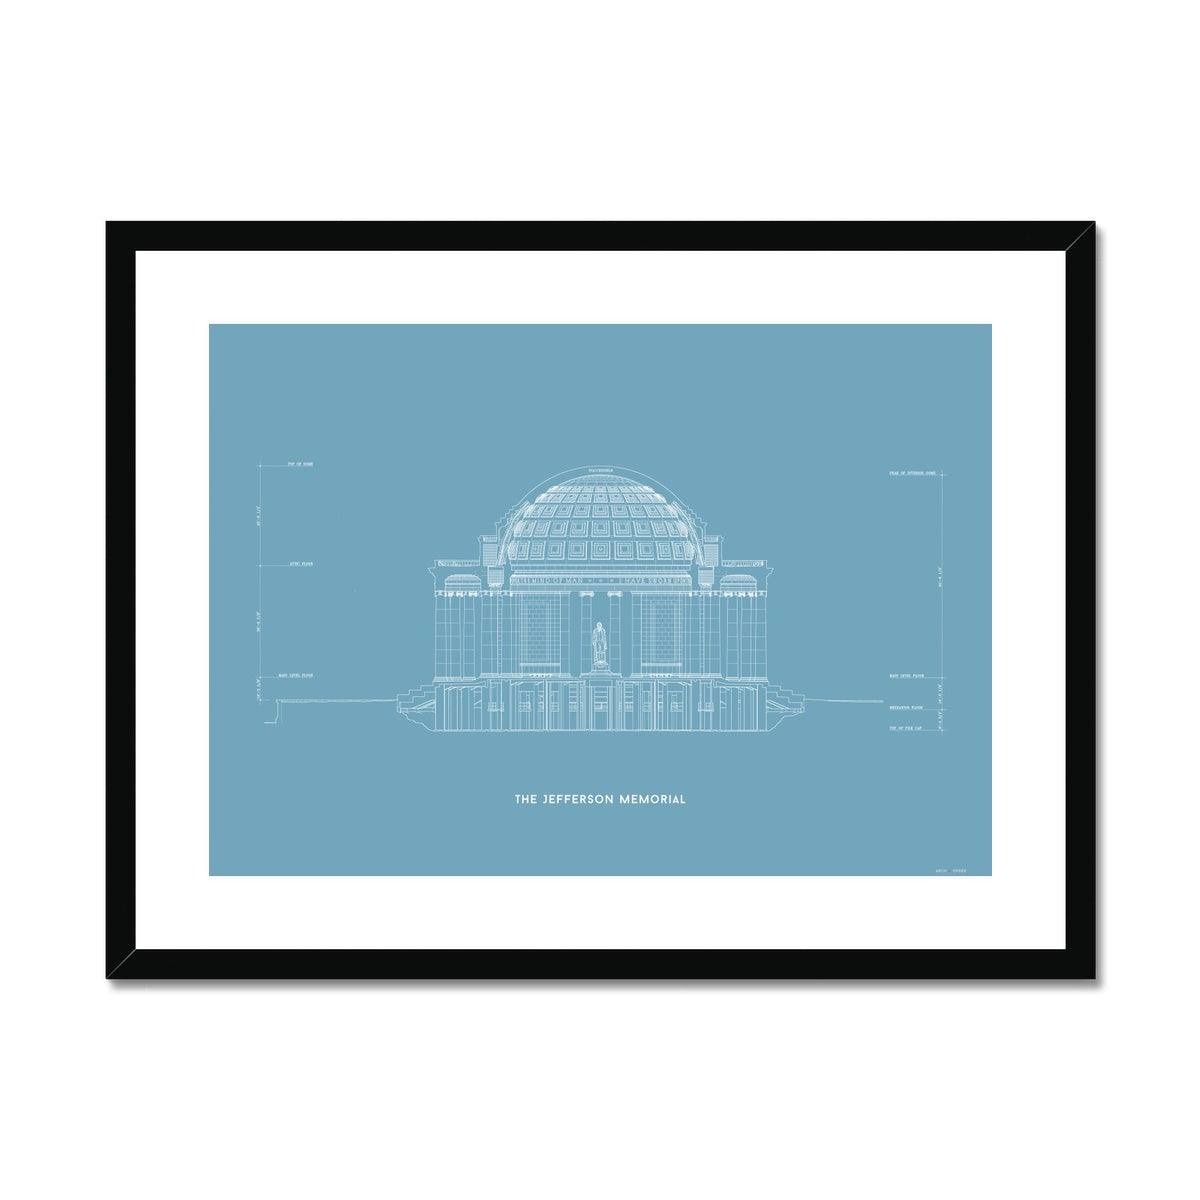 The Jefferson Memorial North Elevation Cross Section - Blue -  Framed & Mounted Print